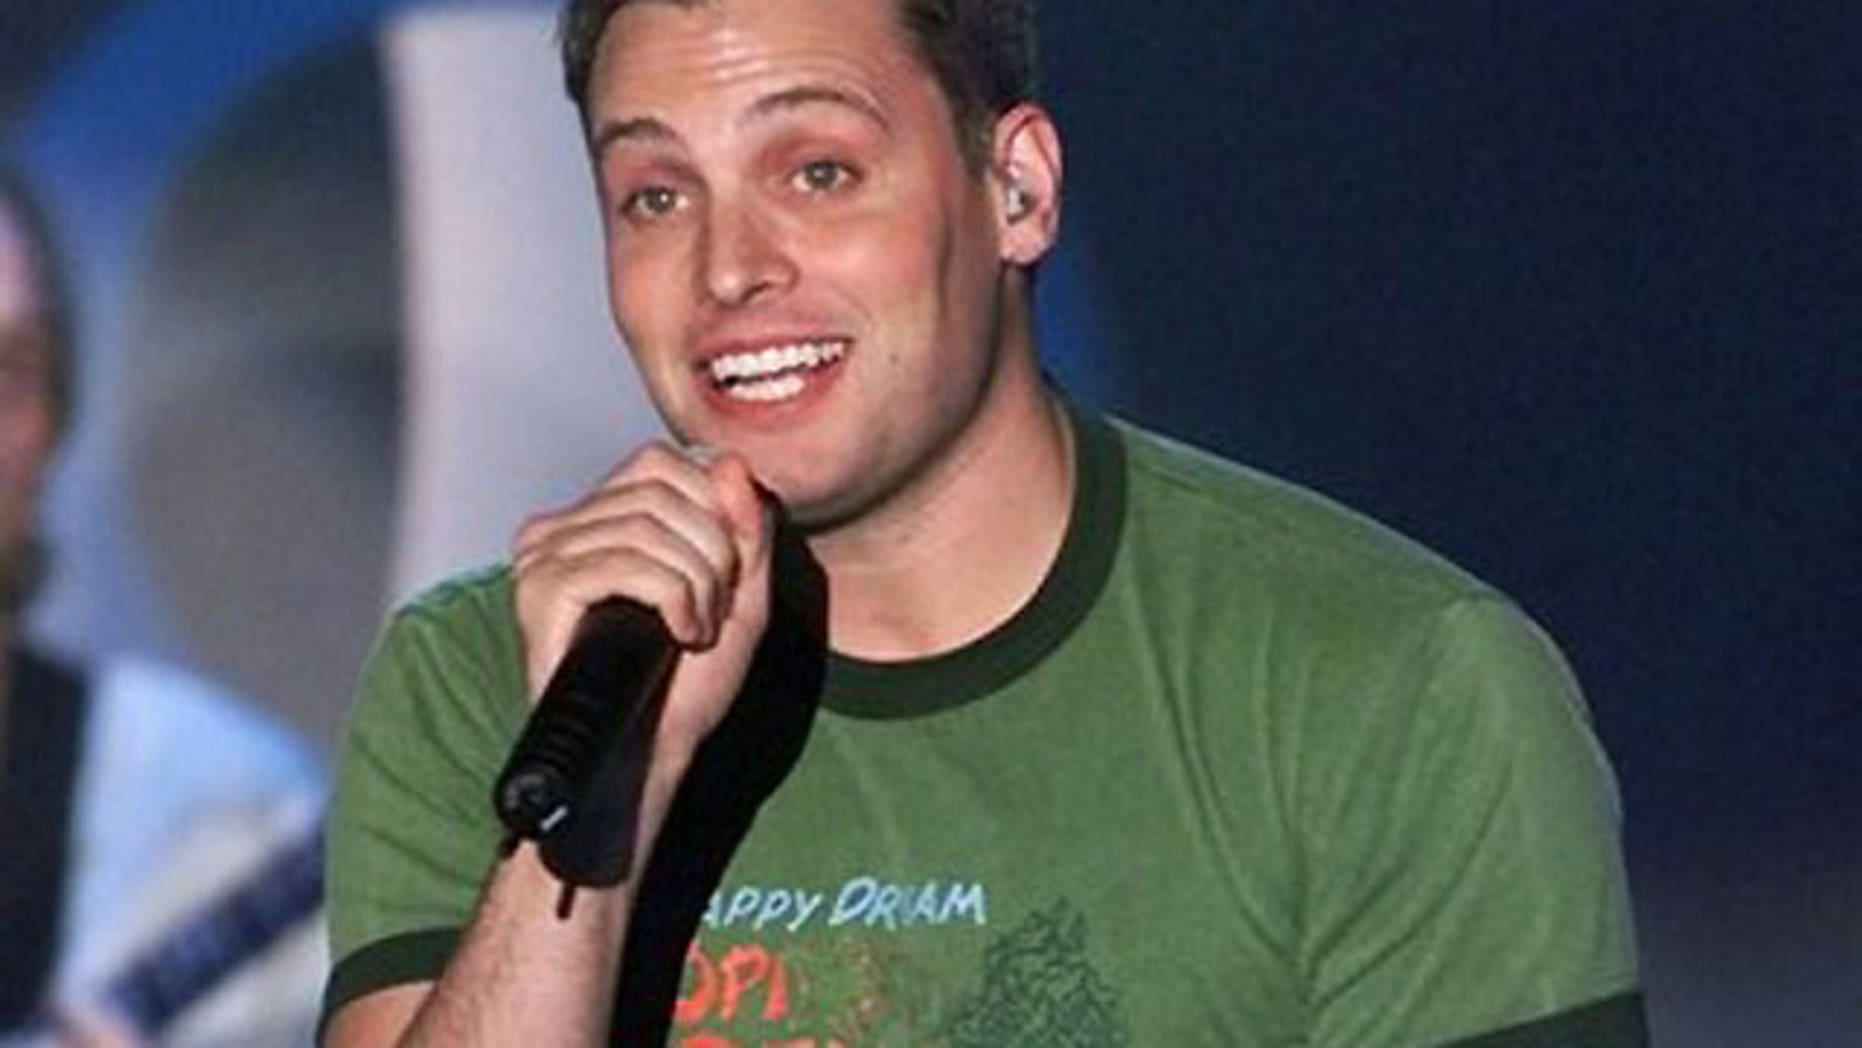 LFO singer Rich Cronin died Wednesday following a battle with Leukemia.